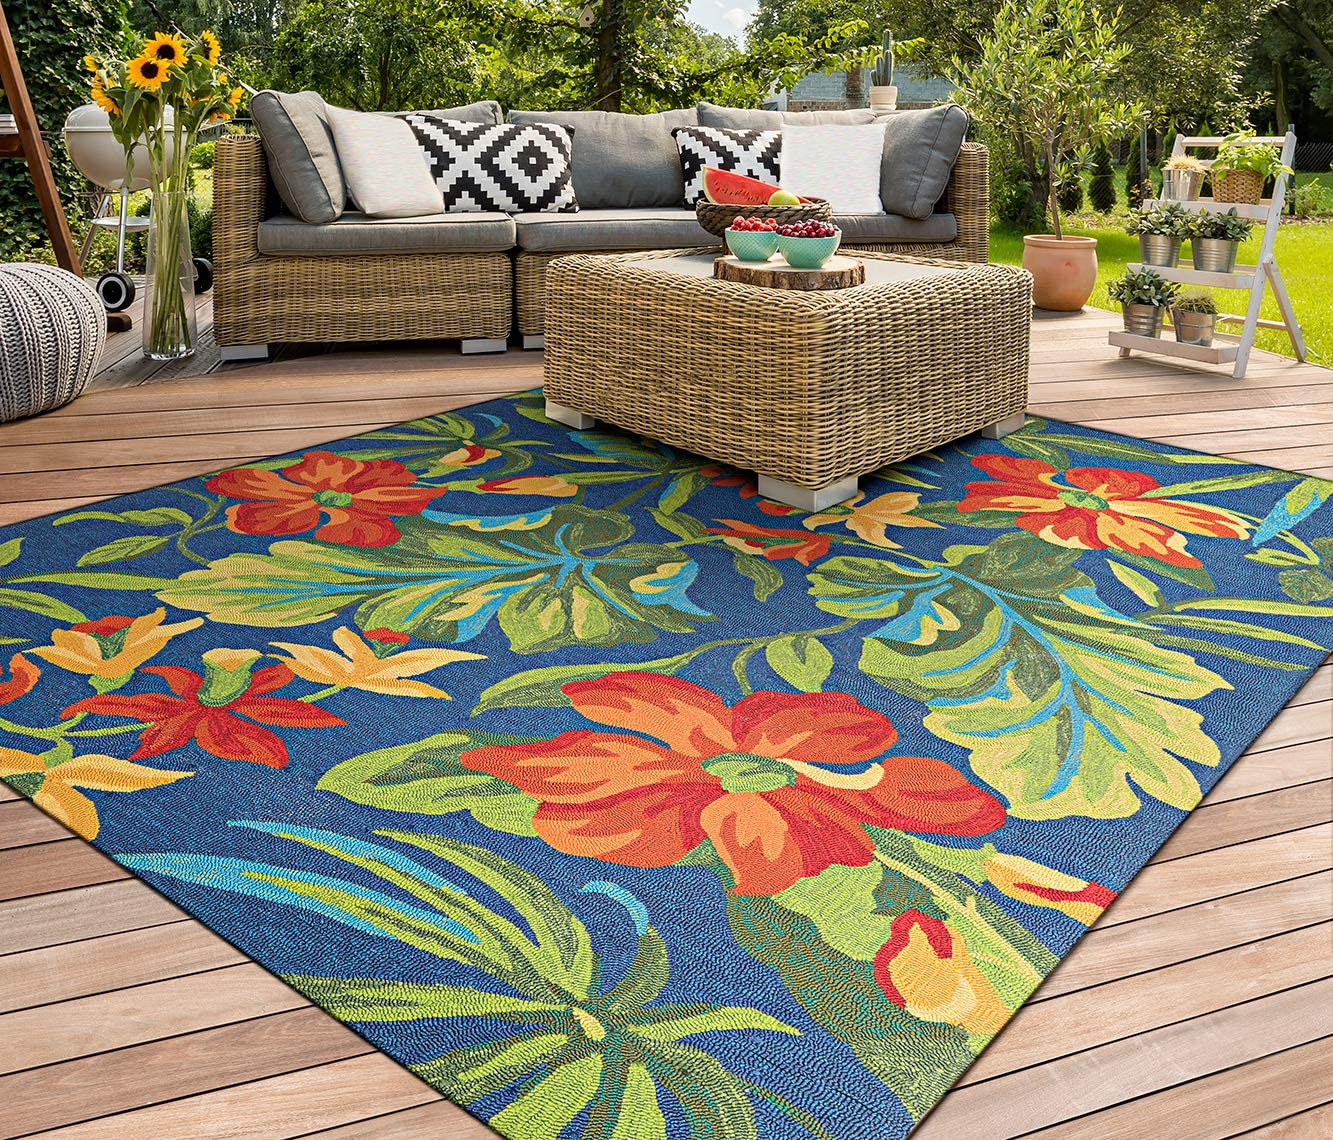 Couristan Covington Tropical Orchid Azure-Forest Green-Red Indoor Outdoor Area Rug, 8 x 11